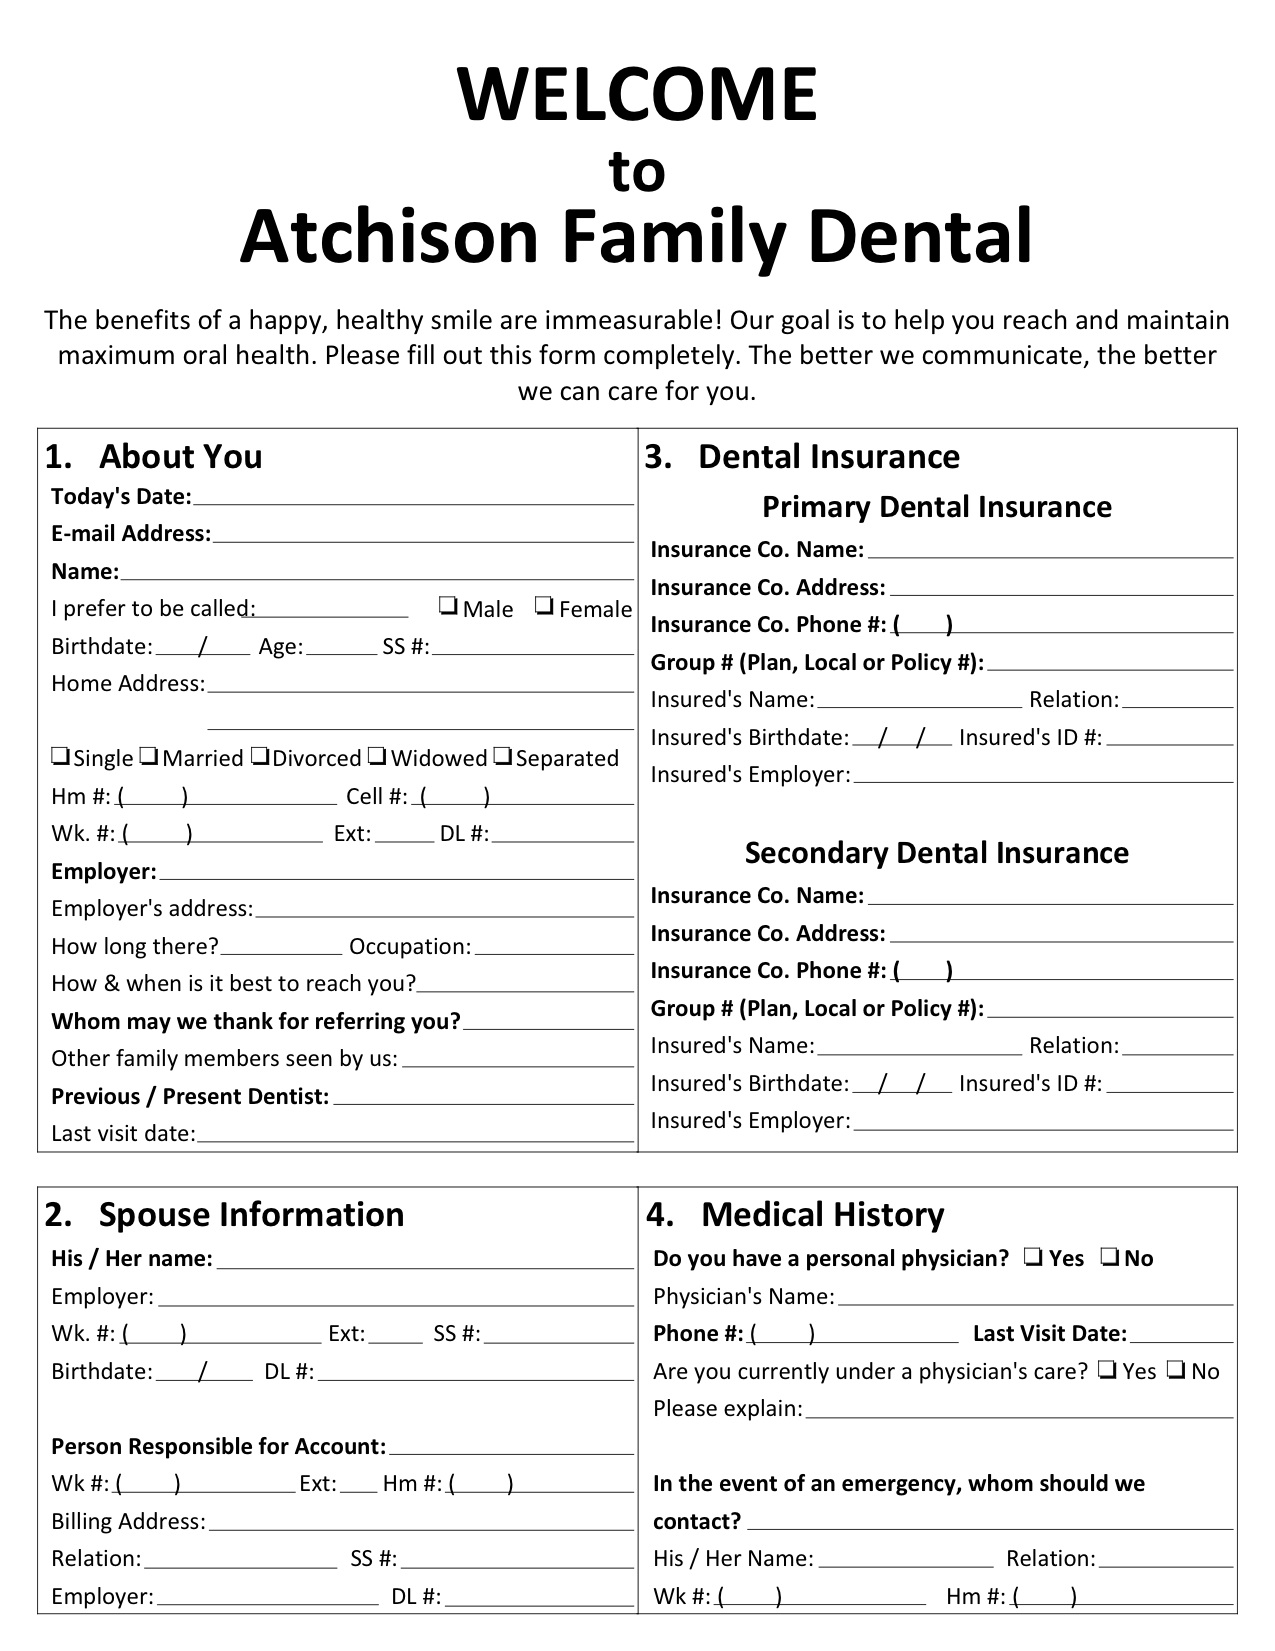 new patient forms atchison family dental